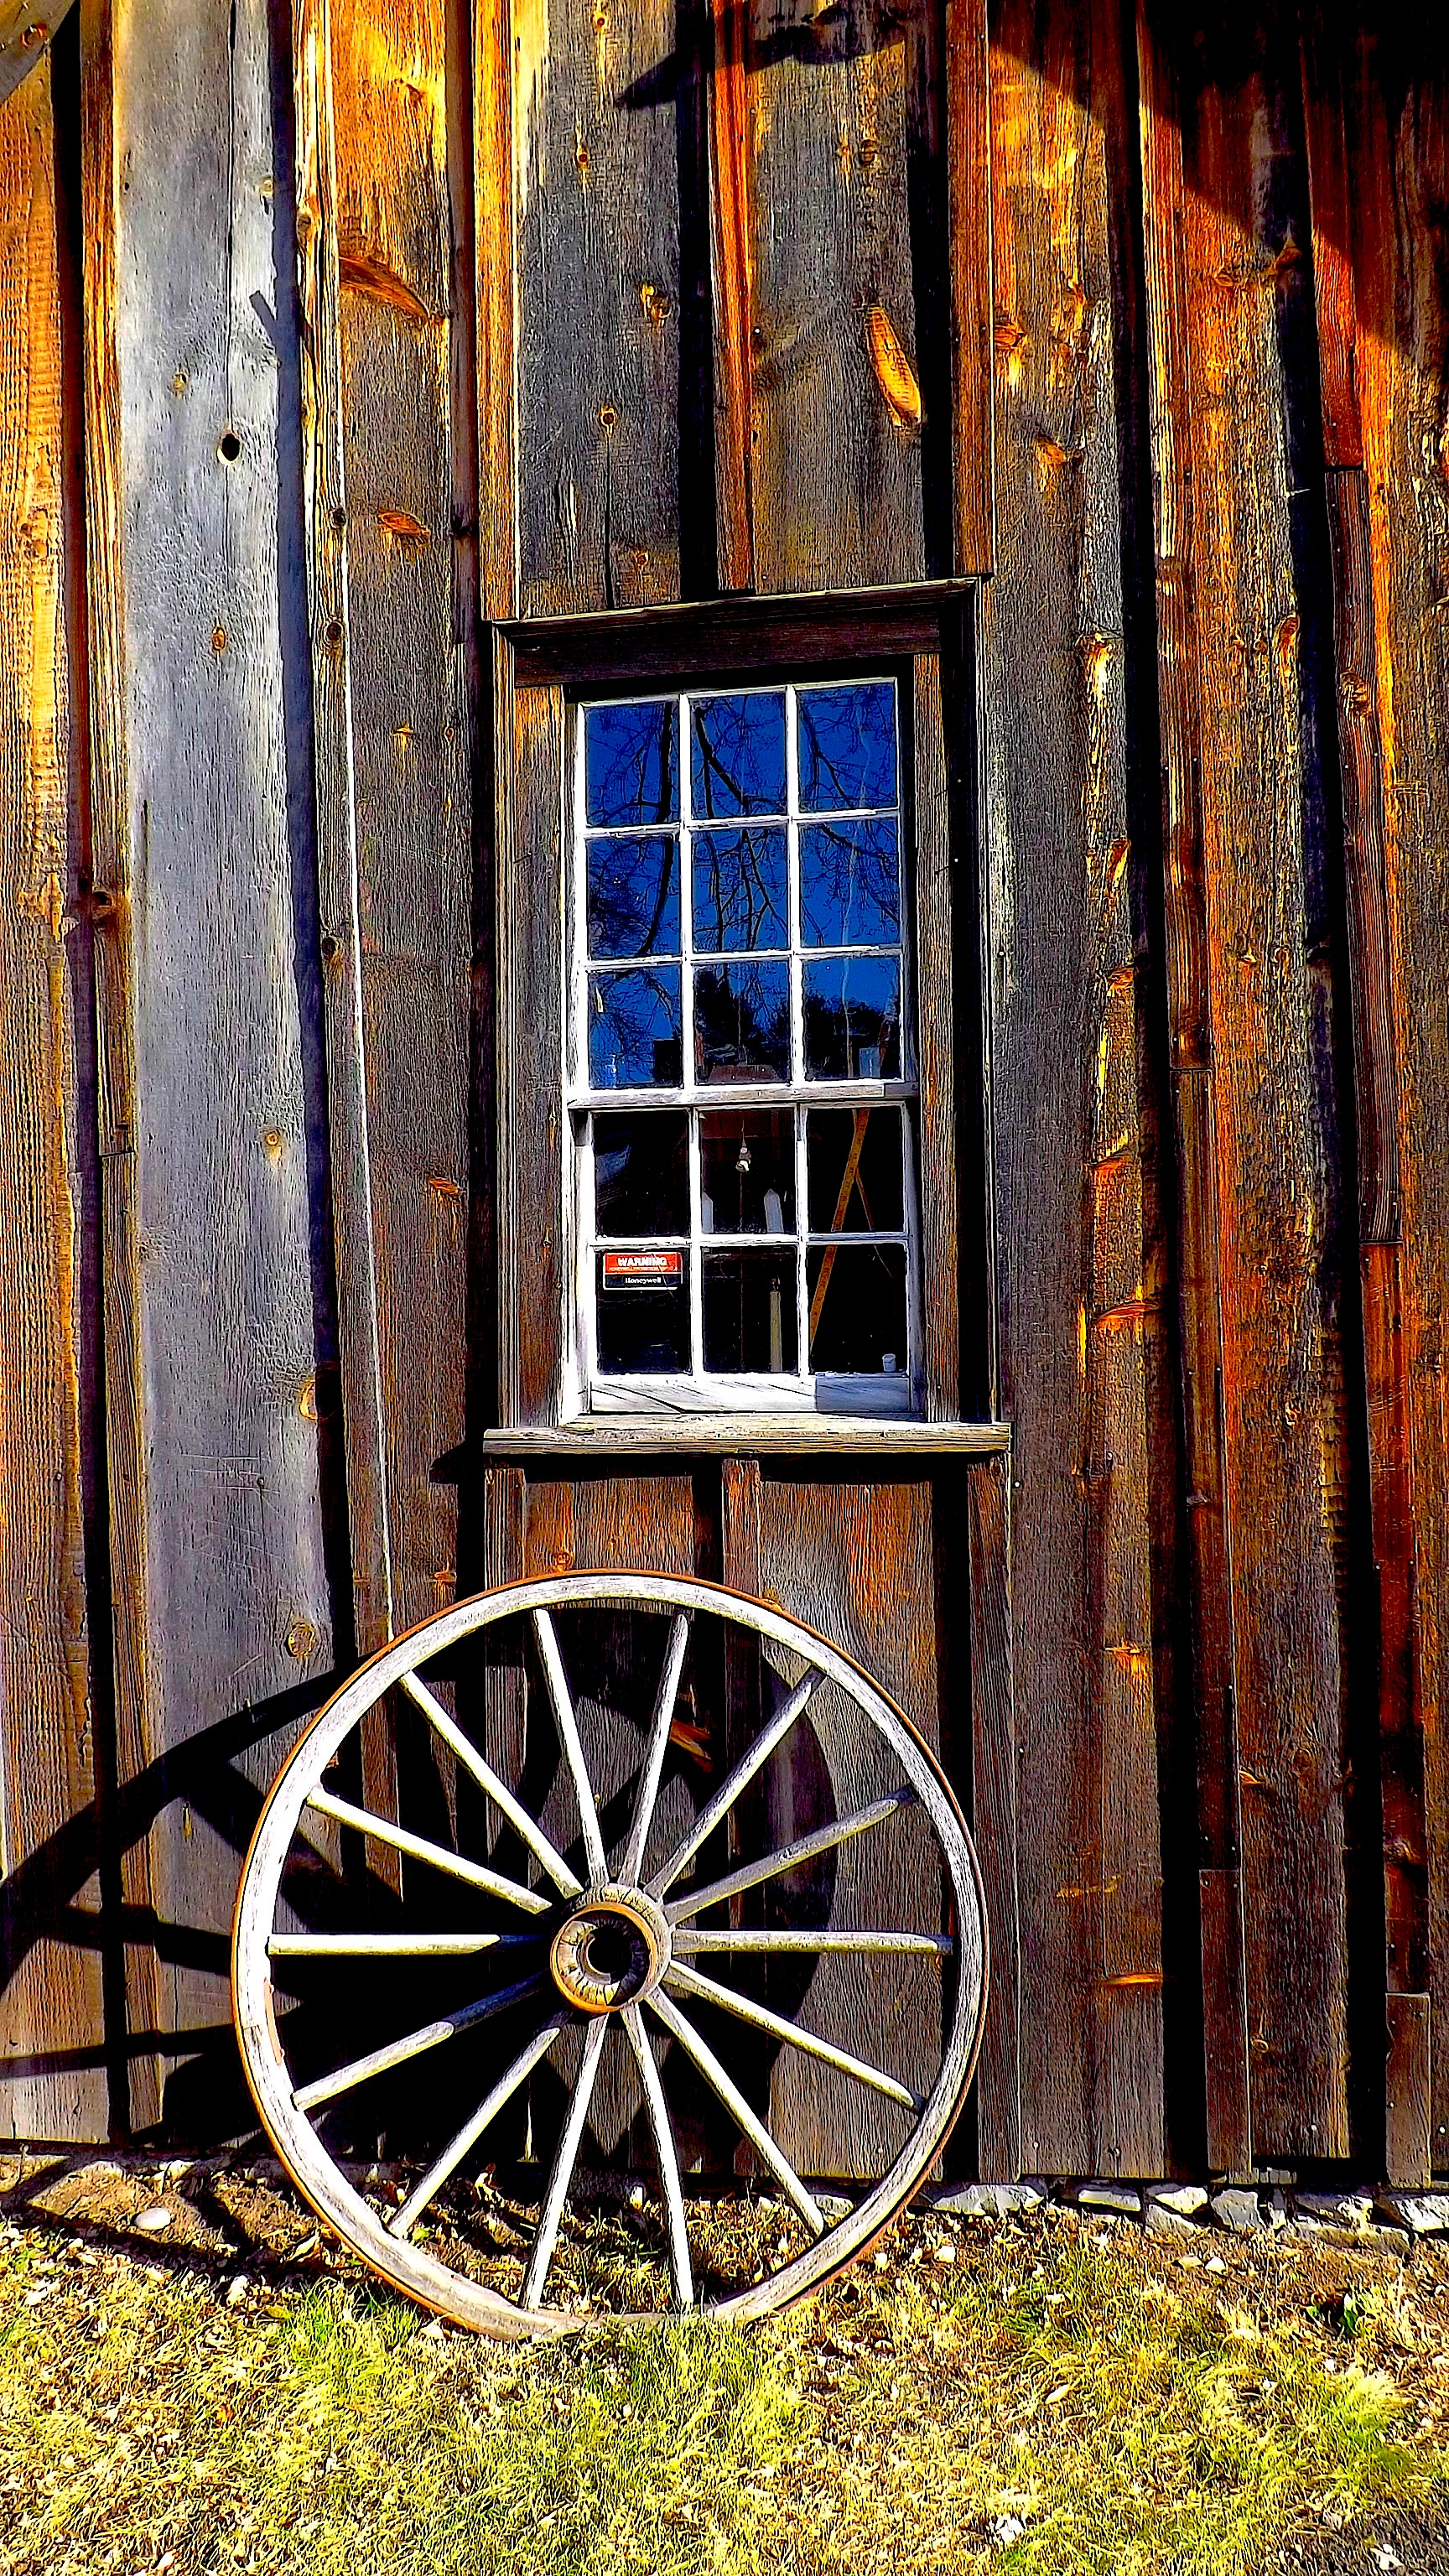 WAGON WHEEL AND WINDOW